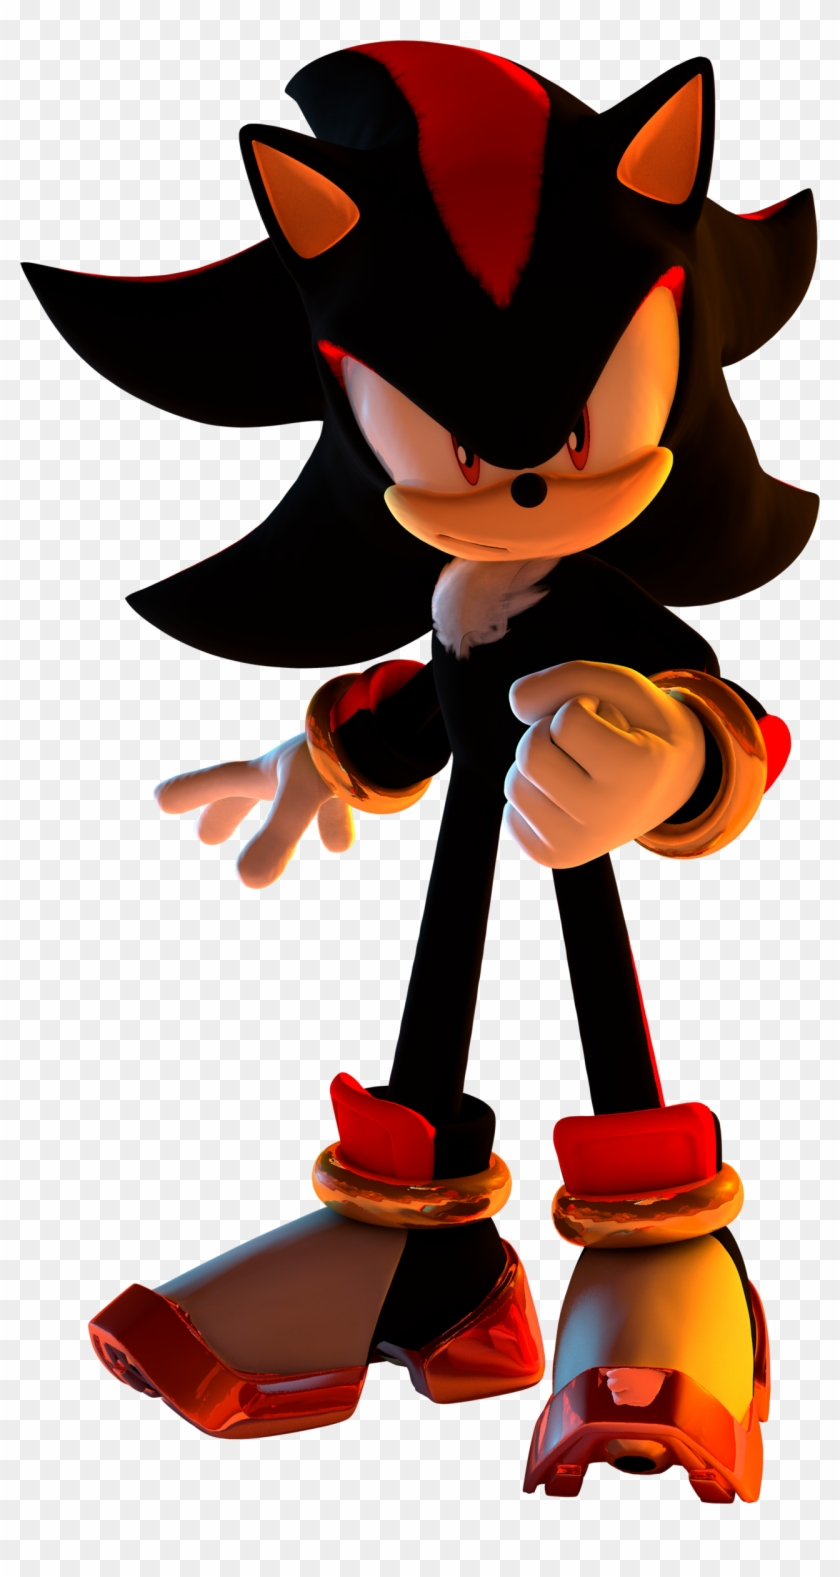 Epic Shadow By Mateus2014 Sonic Forces Shadow The Hedgehog Free Transparent Png Clipart Images Download